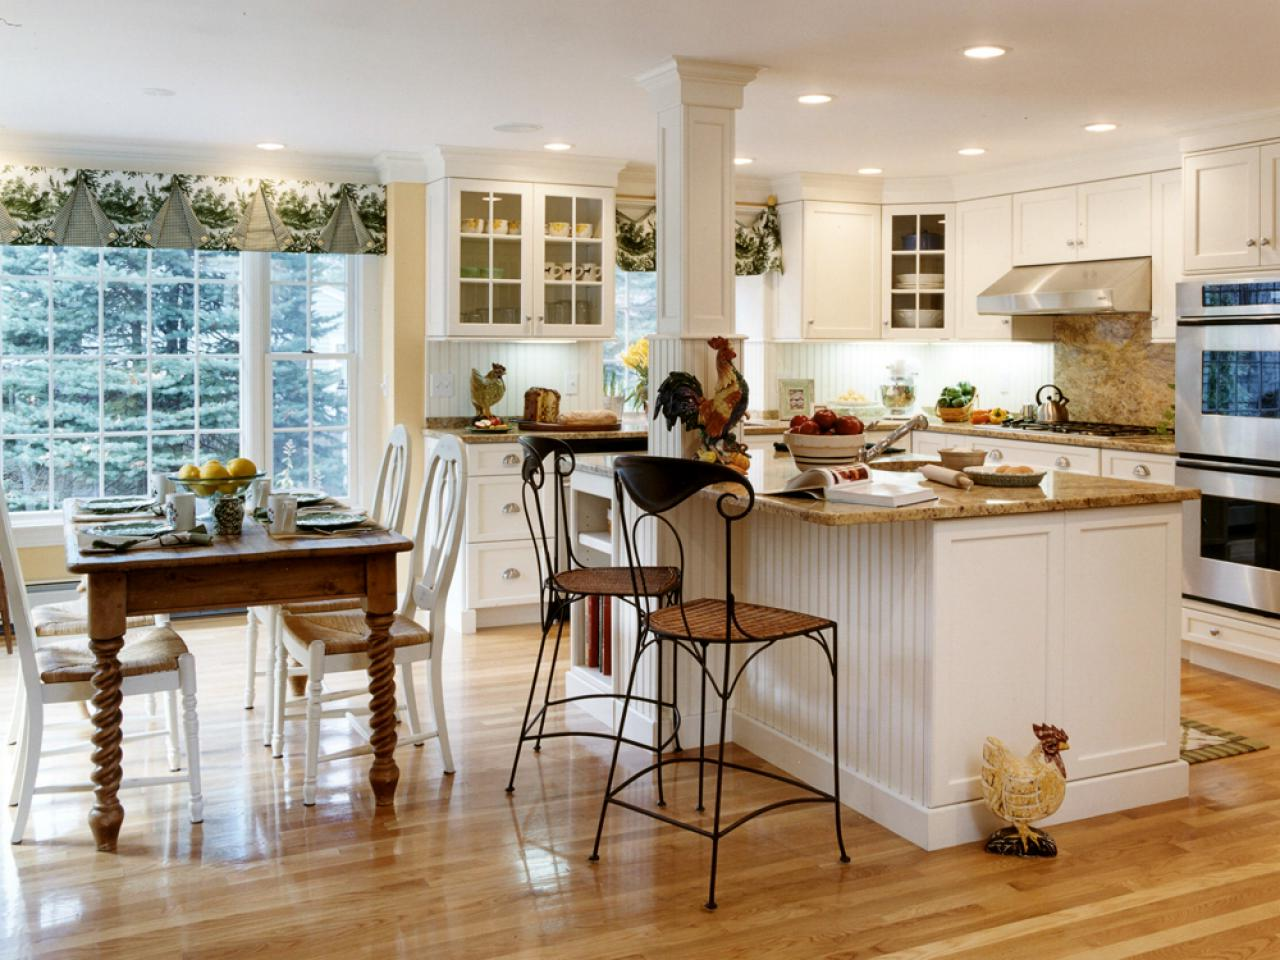 Kitchen Design Images In Country Style With